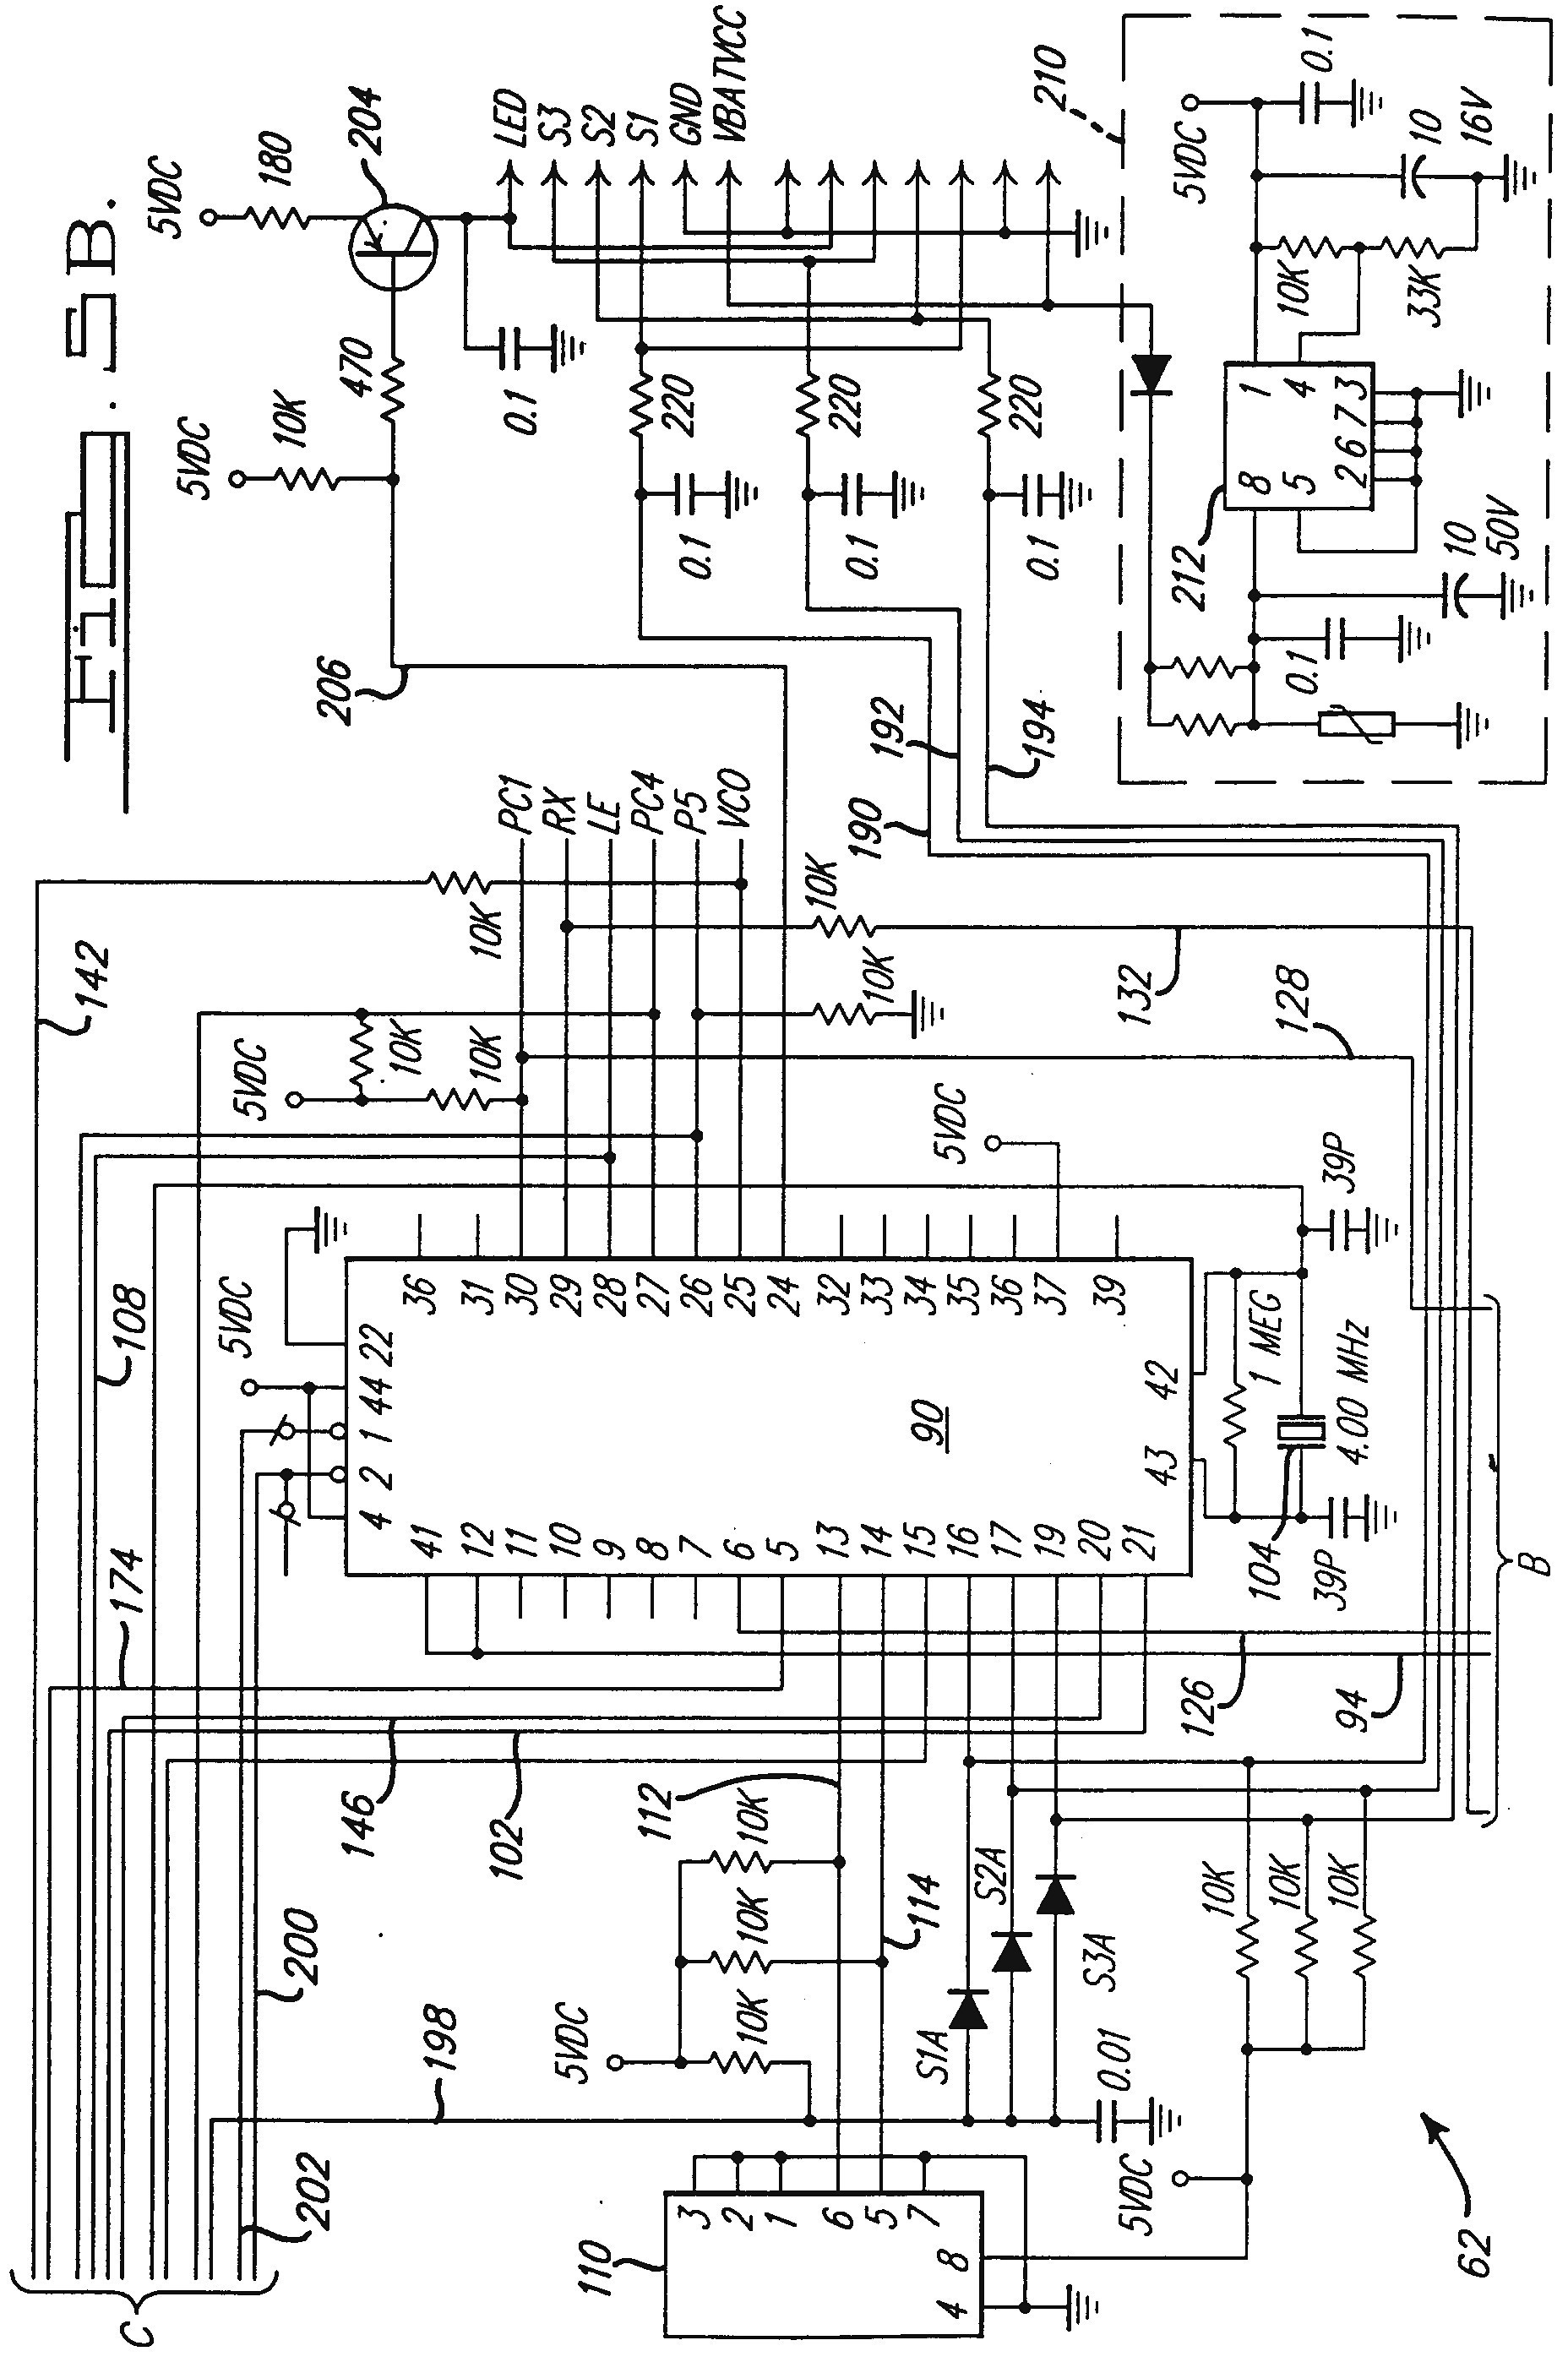 genie garage door safety sensor wiring diagram wiring diagram genie garage door safety sensor wiring diagram genie garage door opener wiring diagram awesome charming